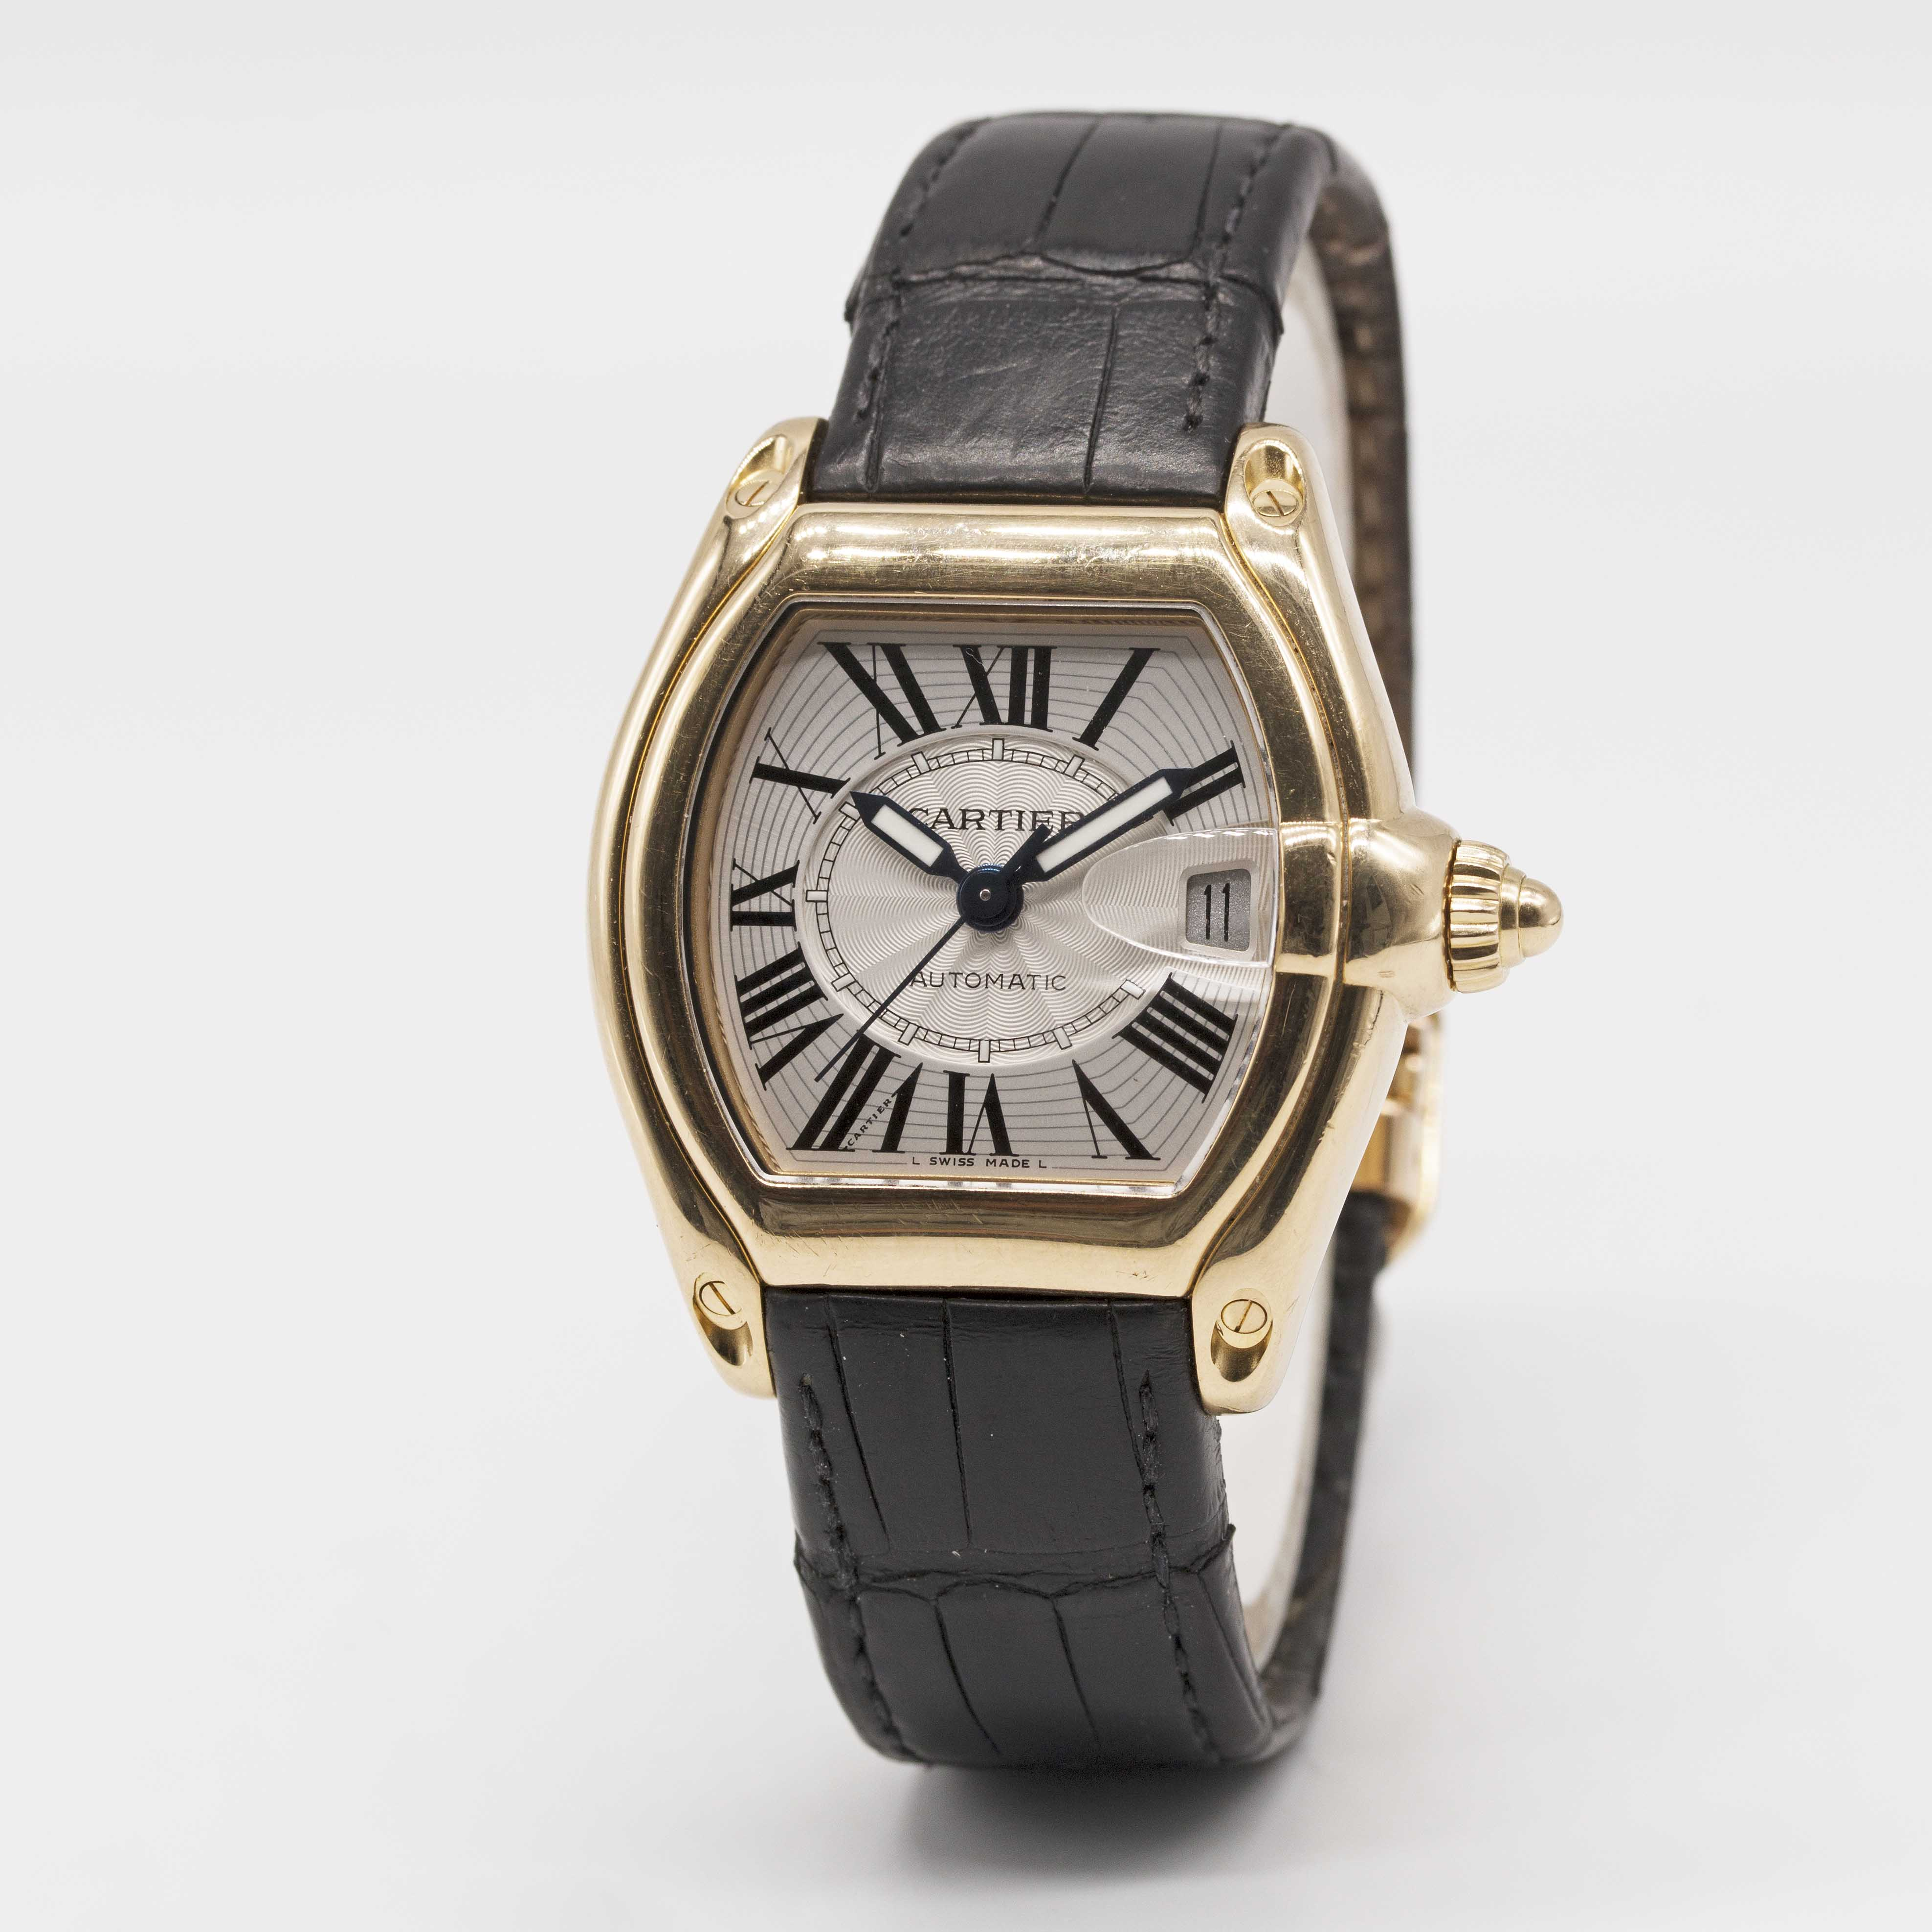 Lot 5 - A GENTLEMAN'S SIZE 18K SOLID YELLOW GOLD CARTIER ROADSTER AUTOMATIC WRIST WATCH DATED 2007, REF.